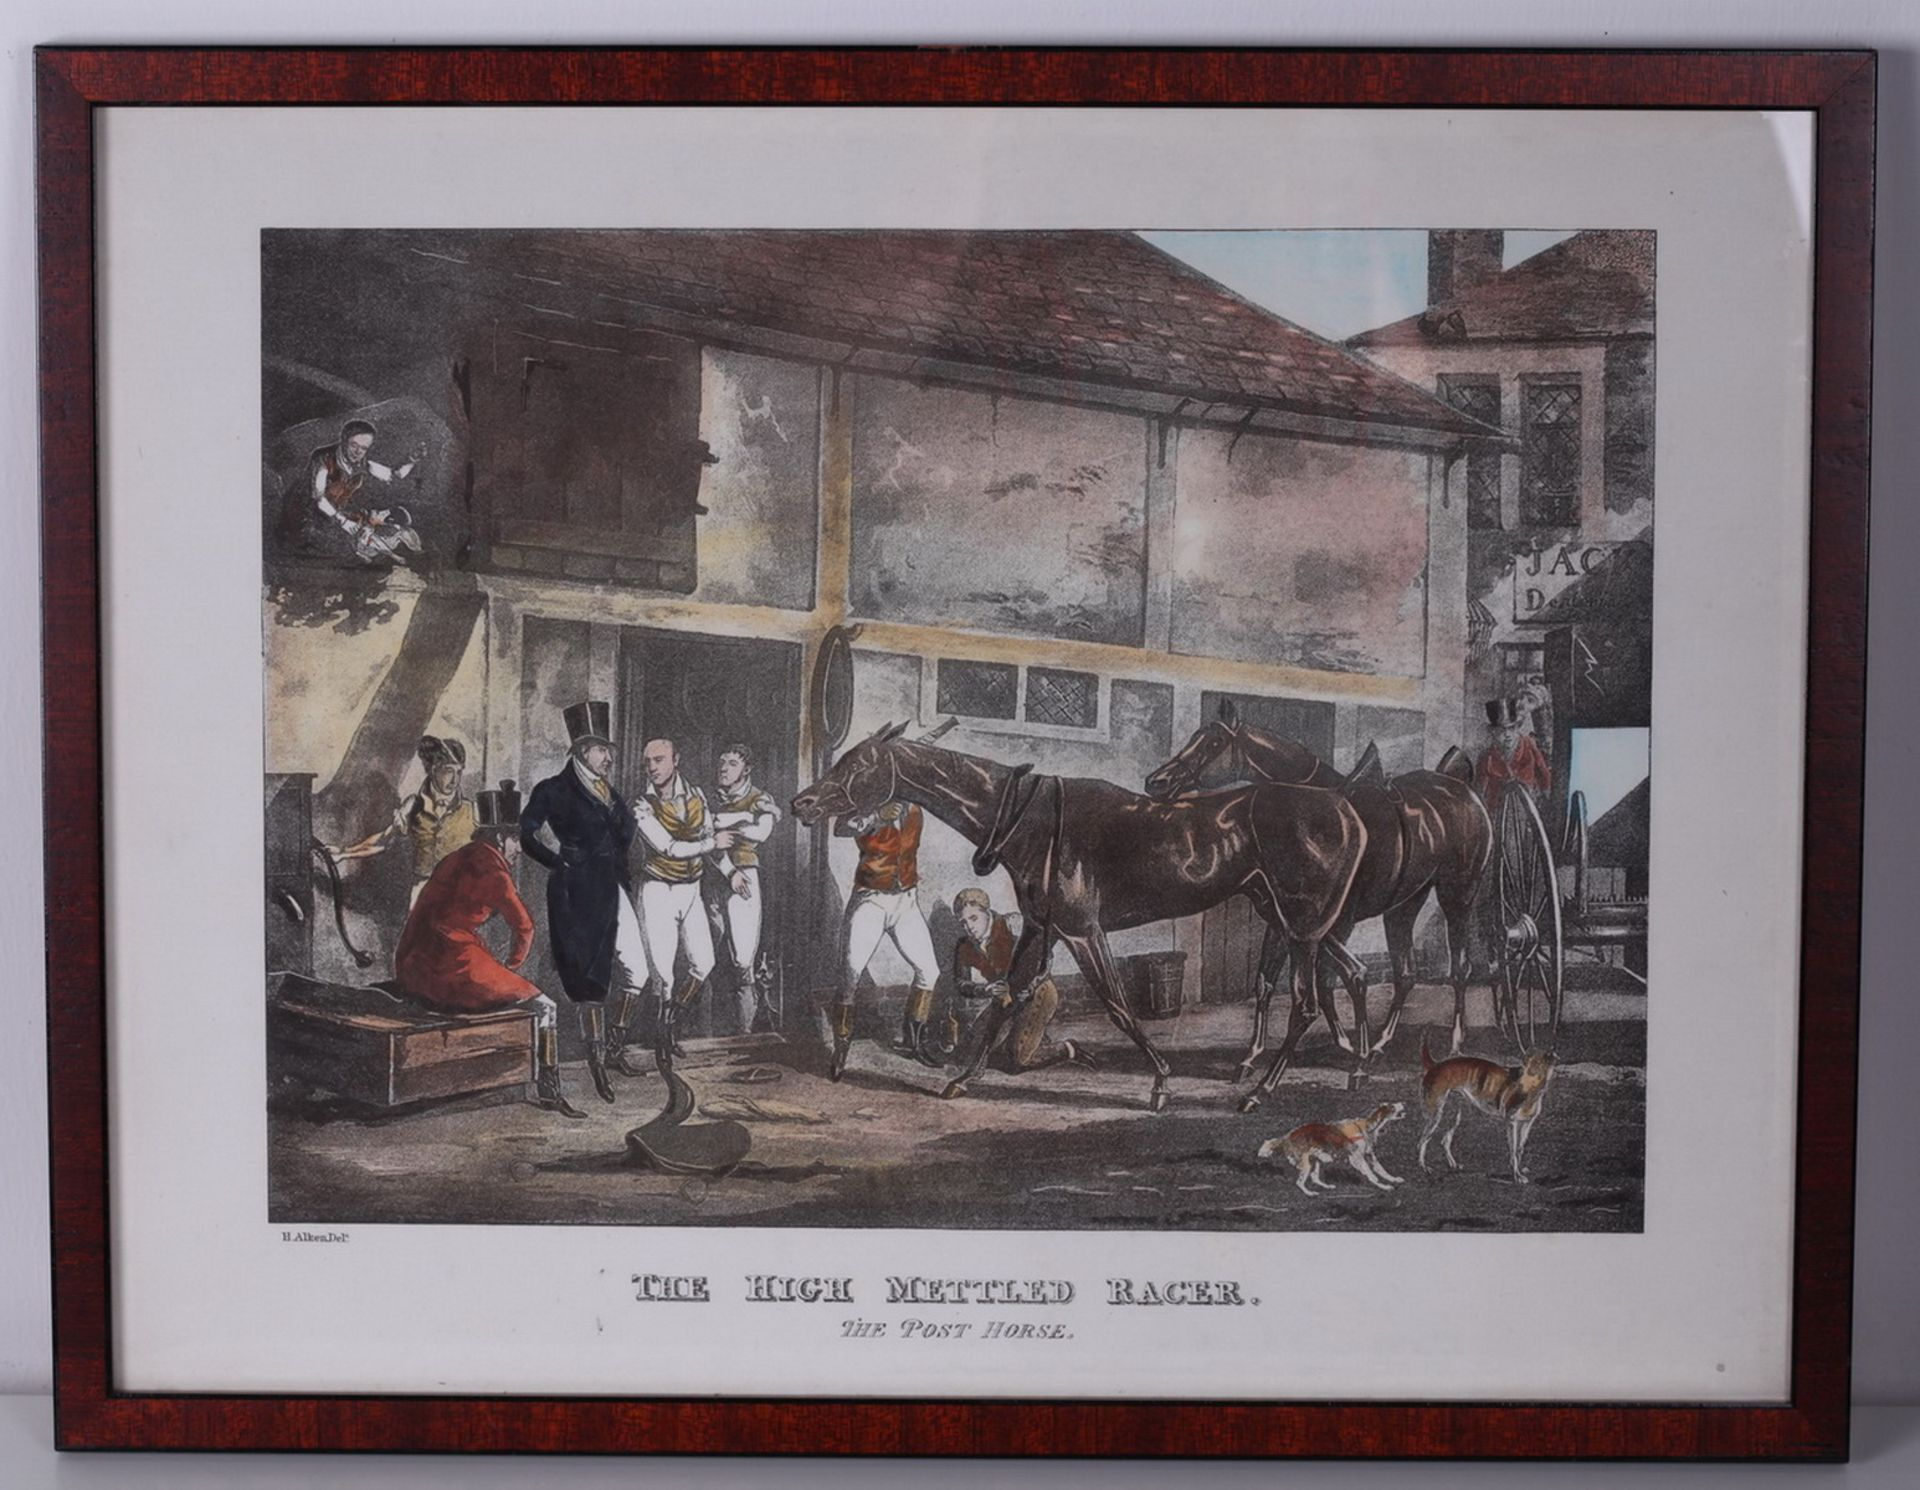 """Alken, Henry. Lithograph """"The High Mettled Racer. The post horse"""".<br>Framed. Middle of the XIX cent - Bild 3 aus 4"""